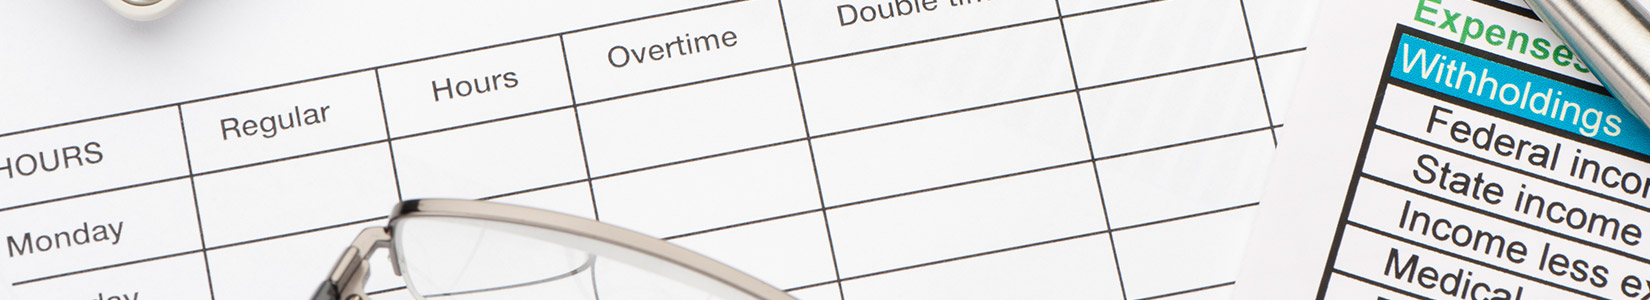 Payroll time sheet and withholdings document